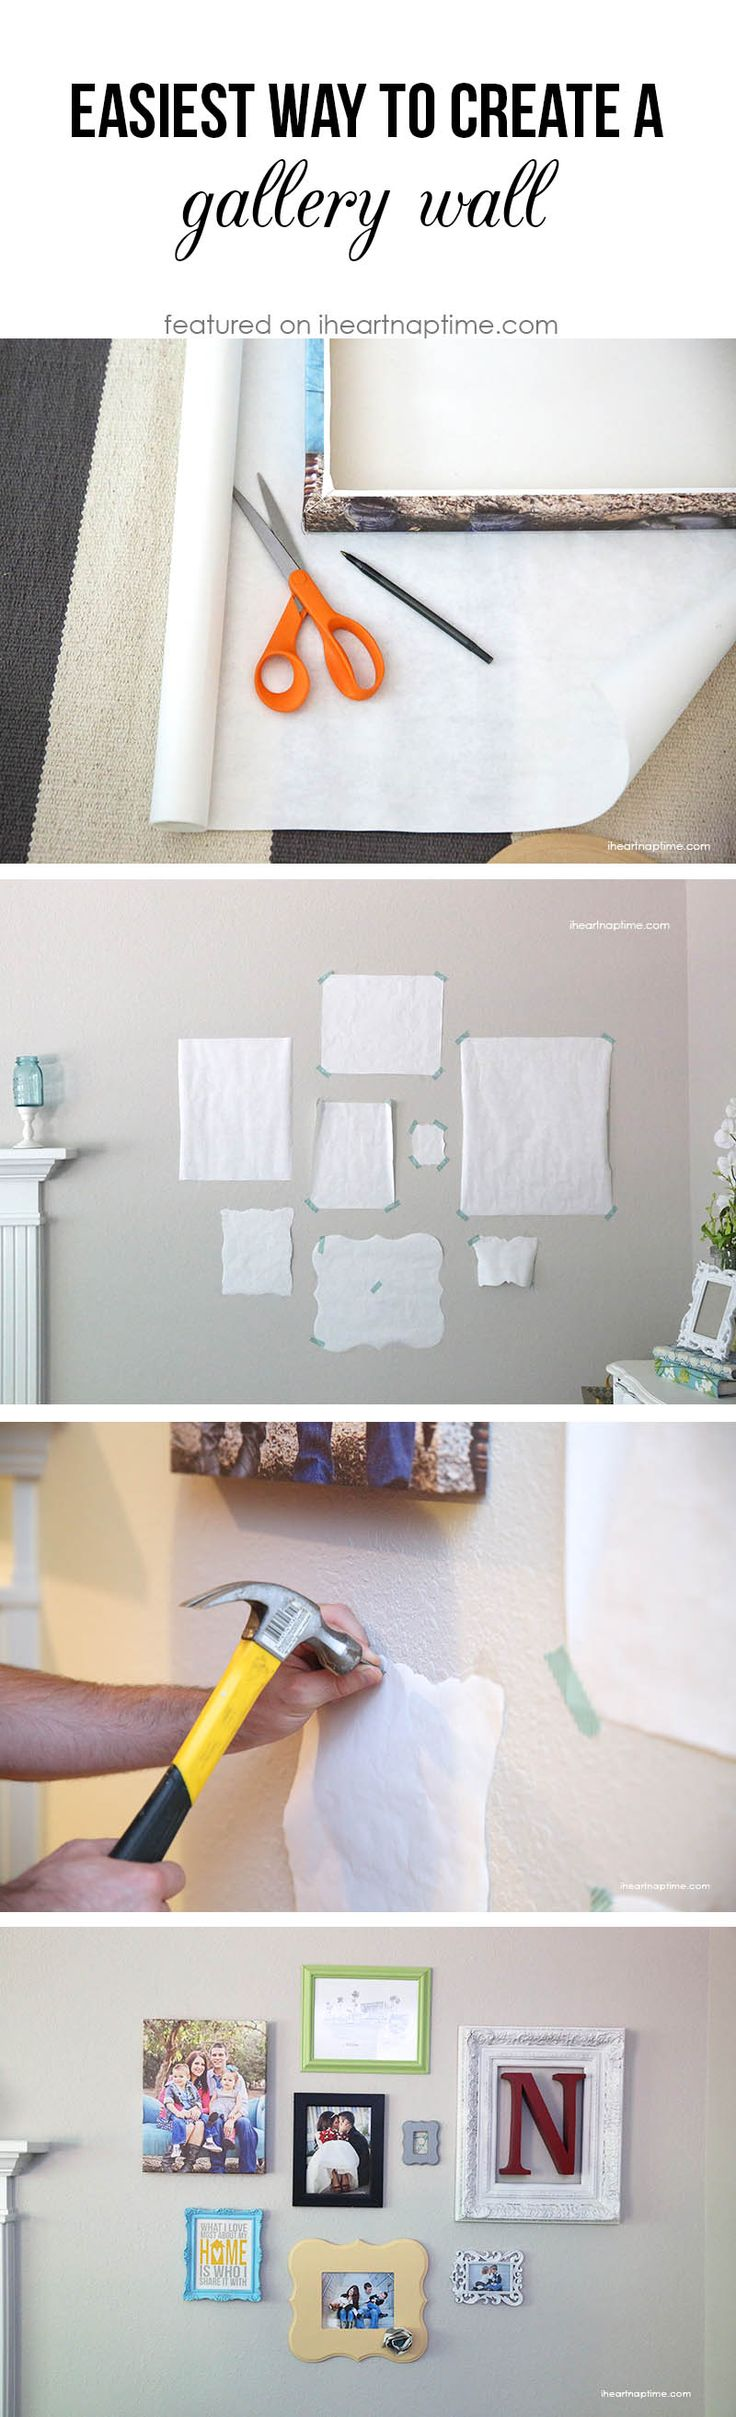 The easiest way to make create a gallery wall! Use wrapping paper to arrange the frames before hanging them up! #tips